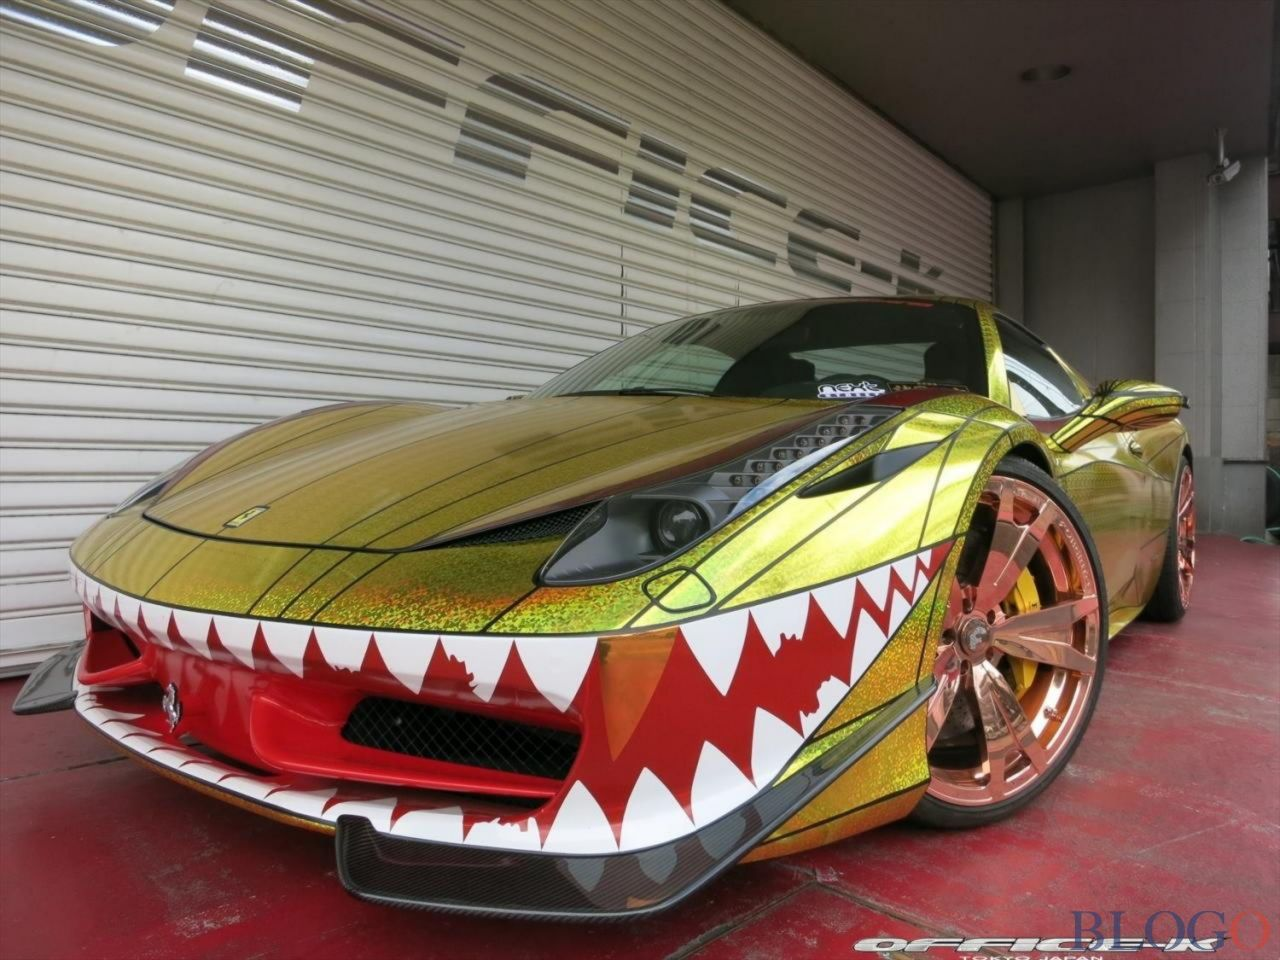 See The Latest 2015 Office K Ferrari 458 Spider Golden Shark Images With  VeePix Vehicle Image Galleries